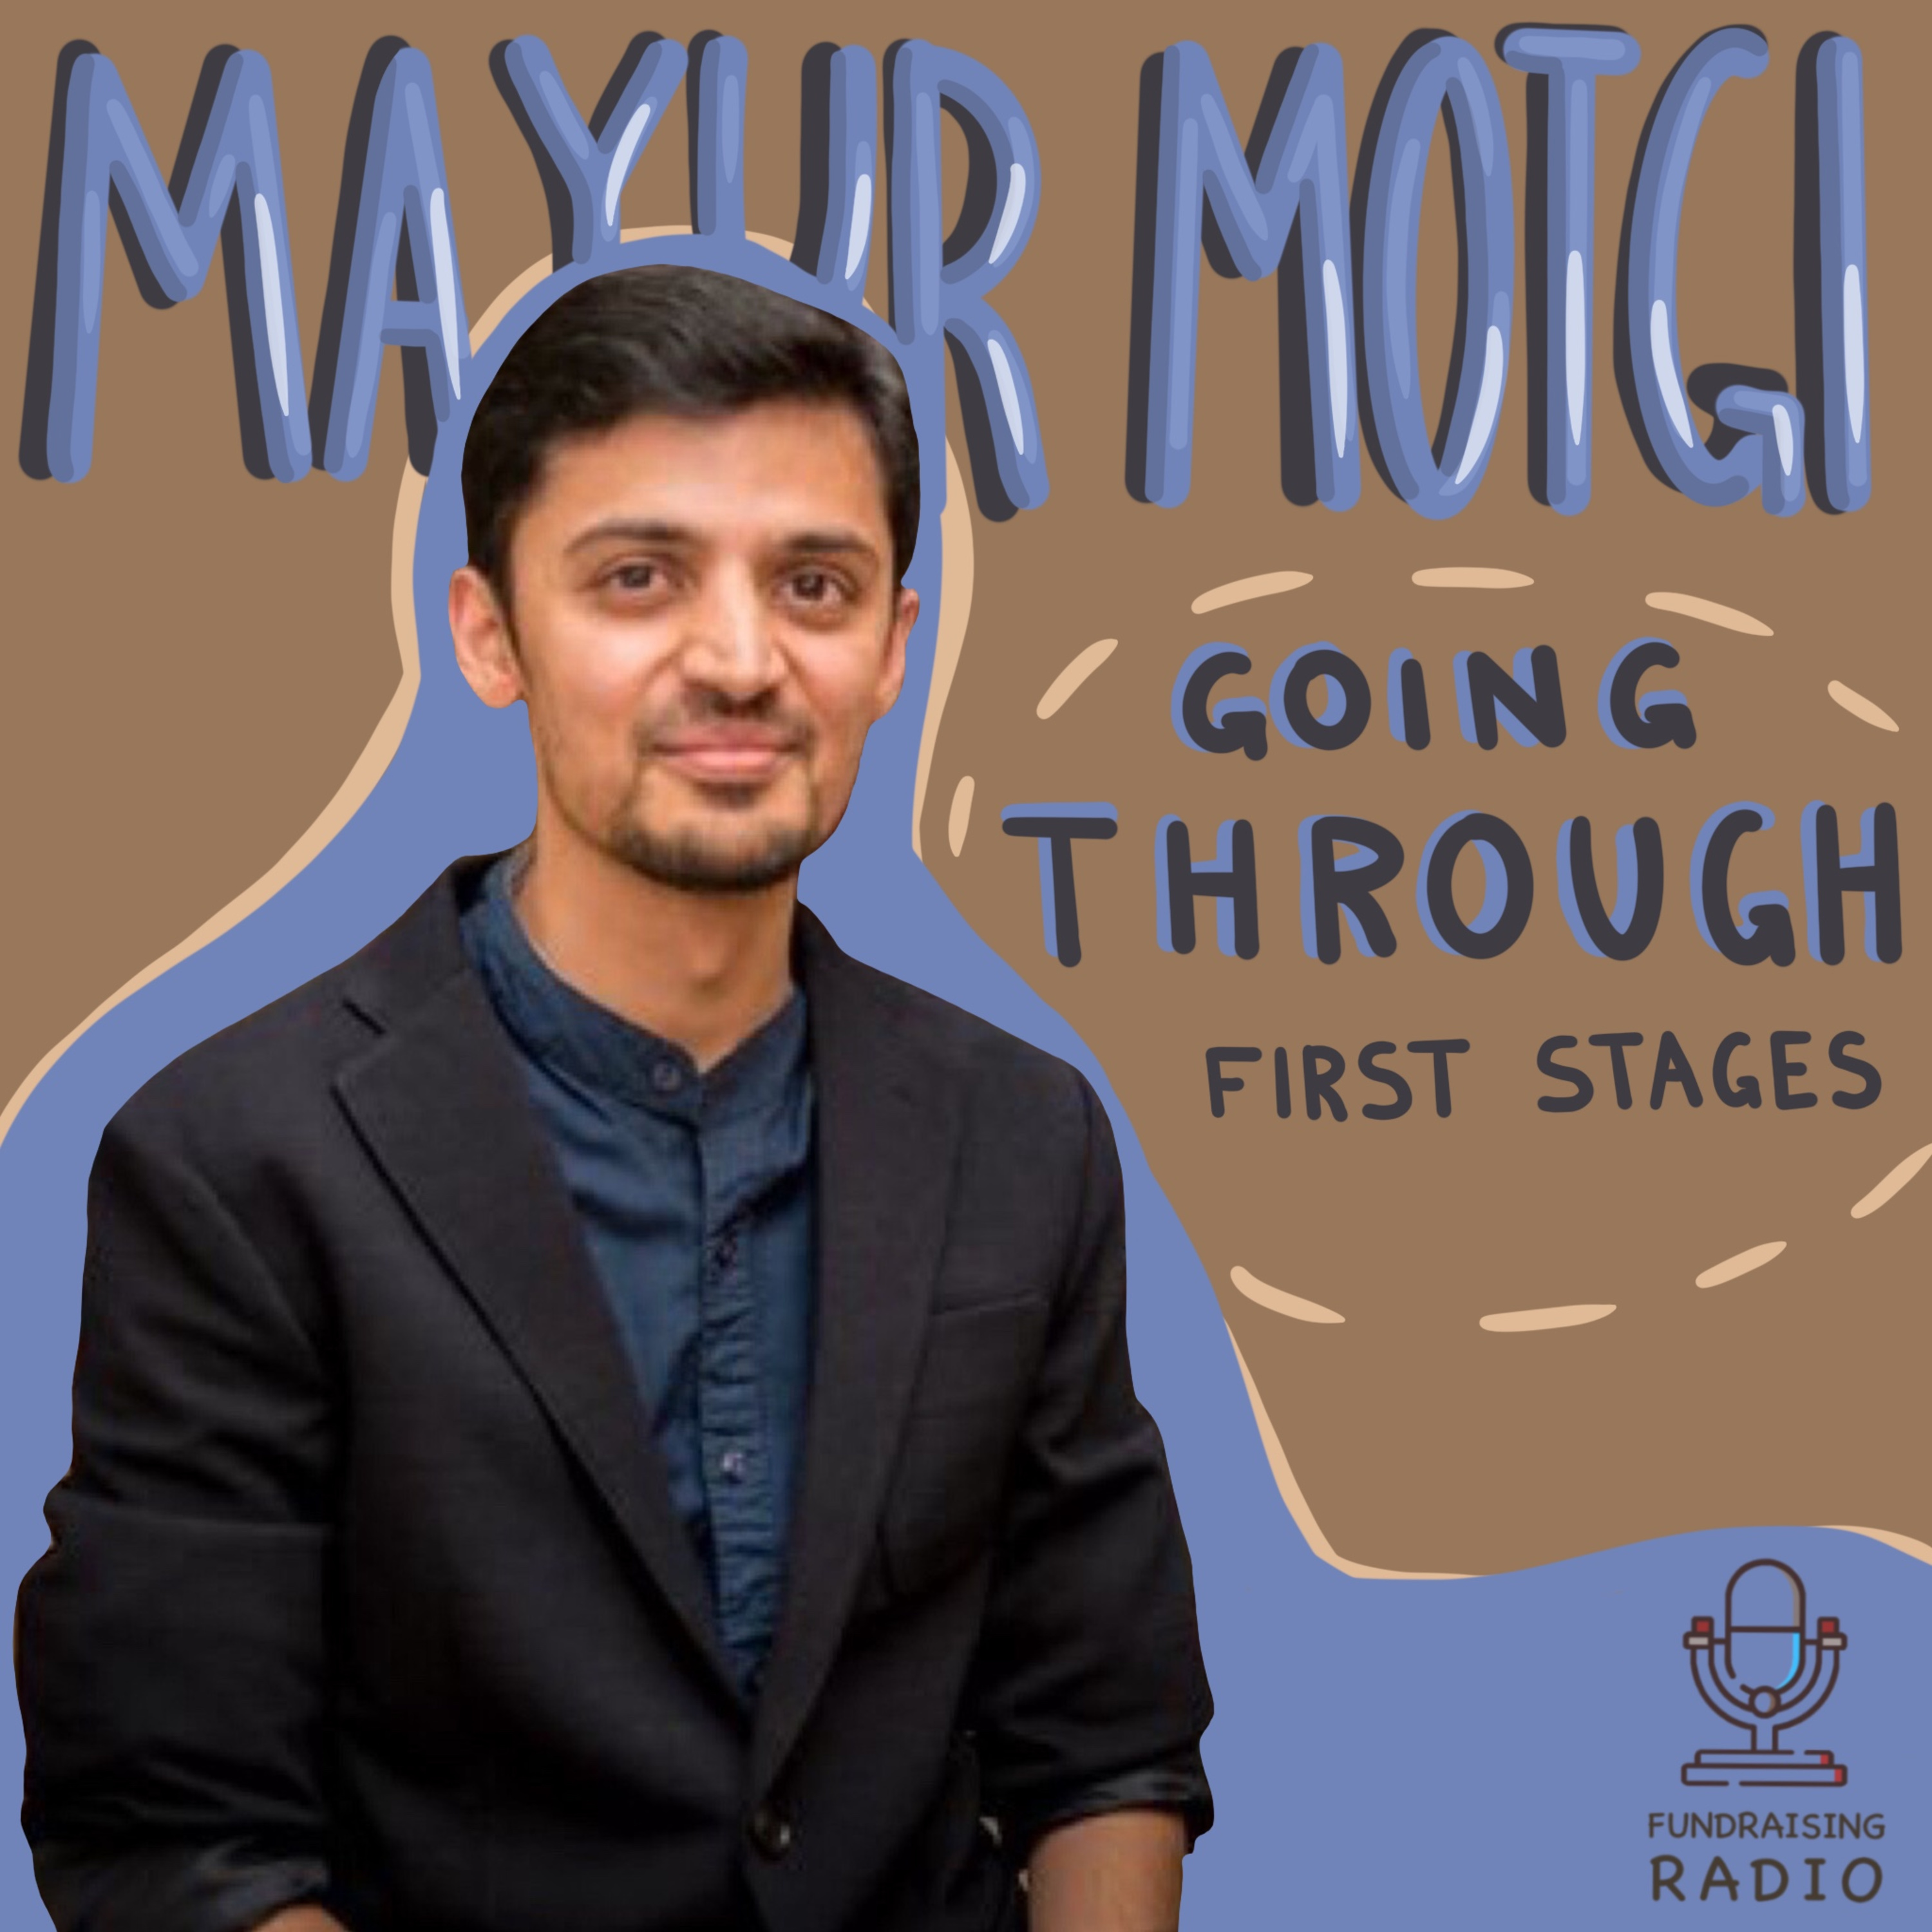 Going through first stages of building a product without fundraising, and getting acquired - Mayur Motgi on Propl's acquisition.